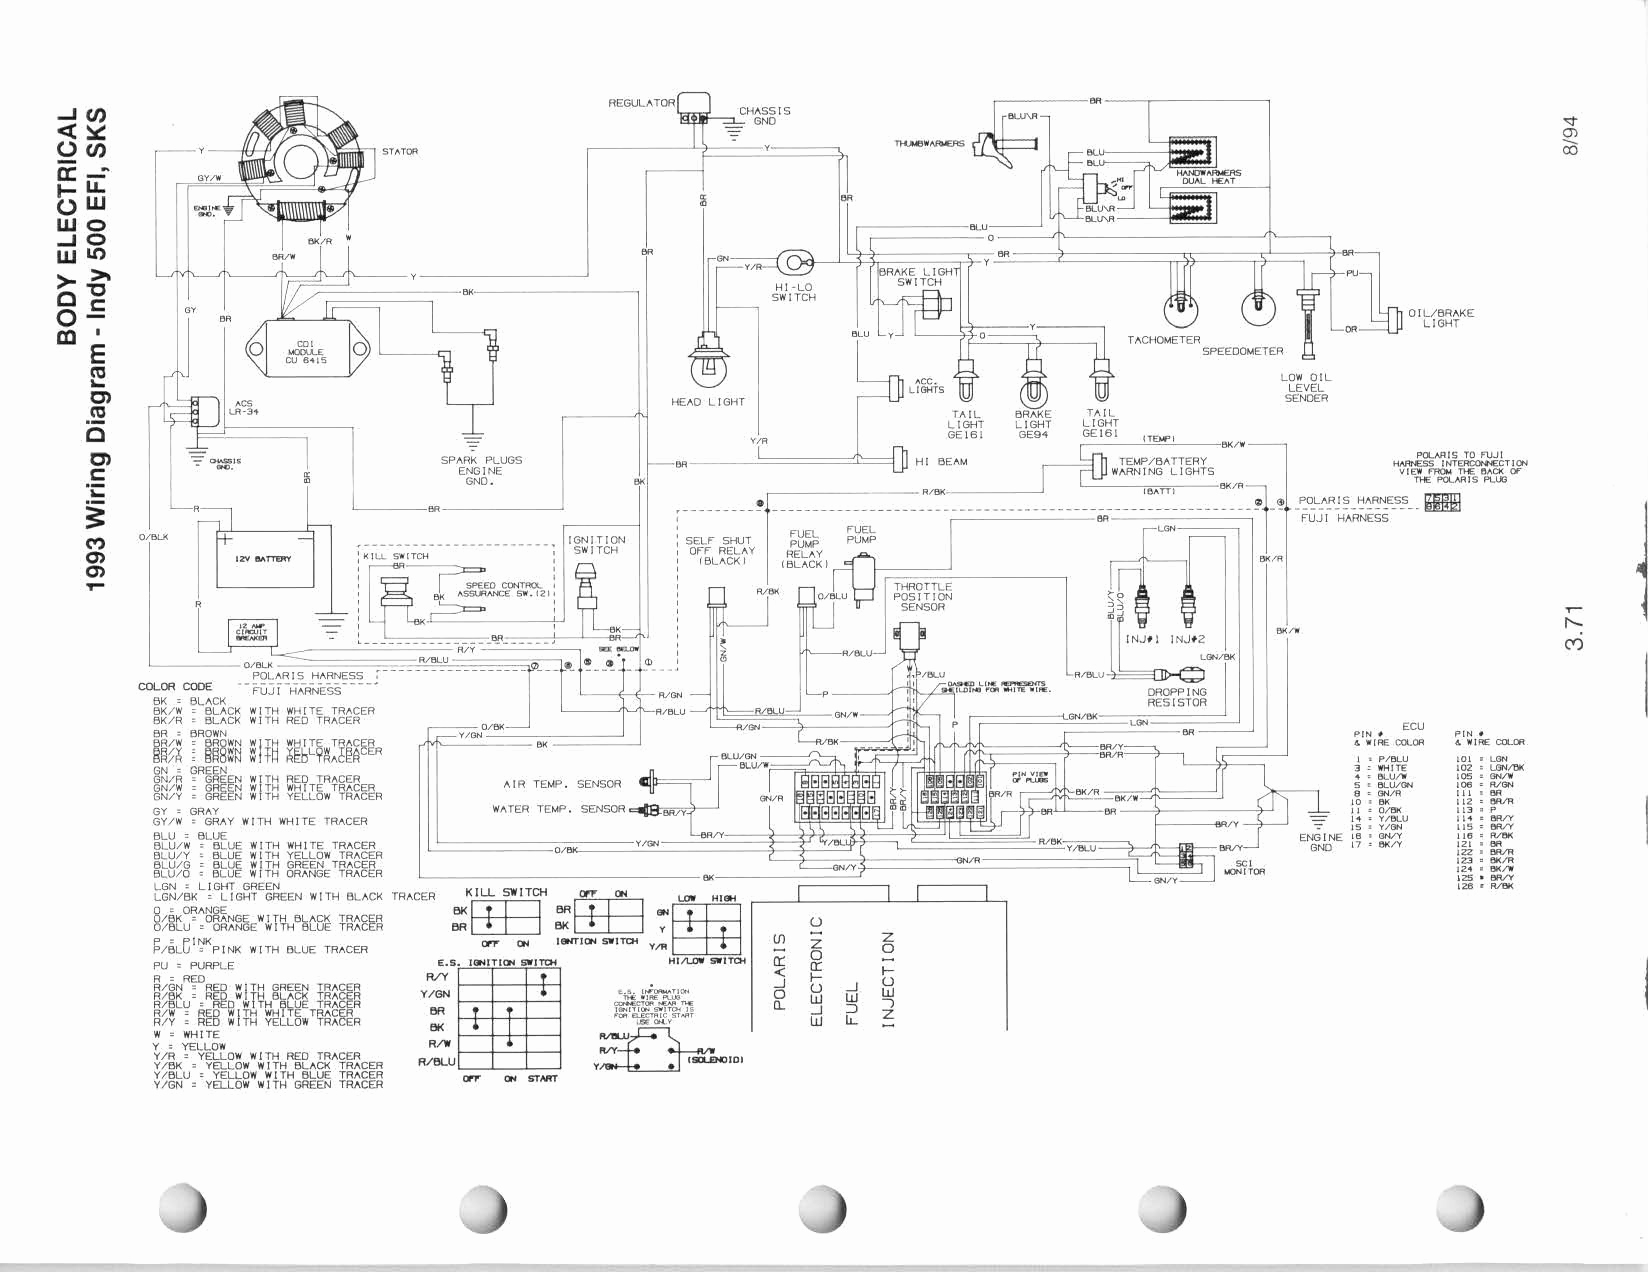 2011 polaris ranger 500 wiring diagram polaris ranger wiring diagram | free wiring diagram polaris ranger electrical schematic